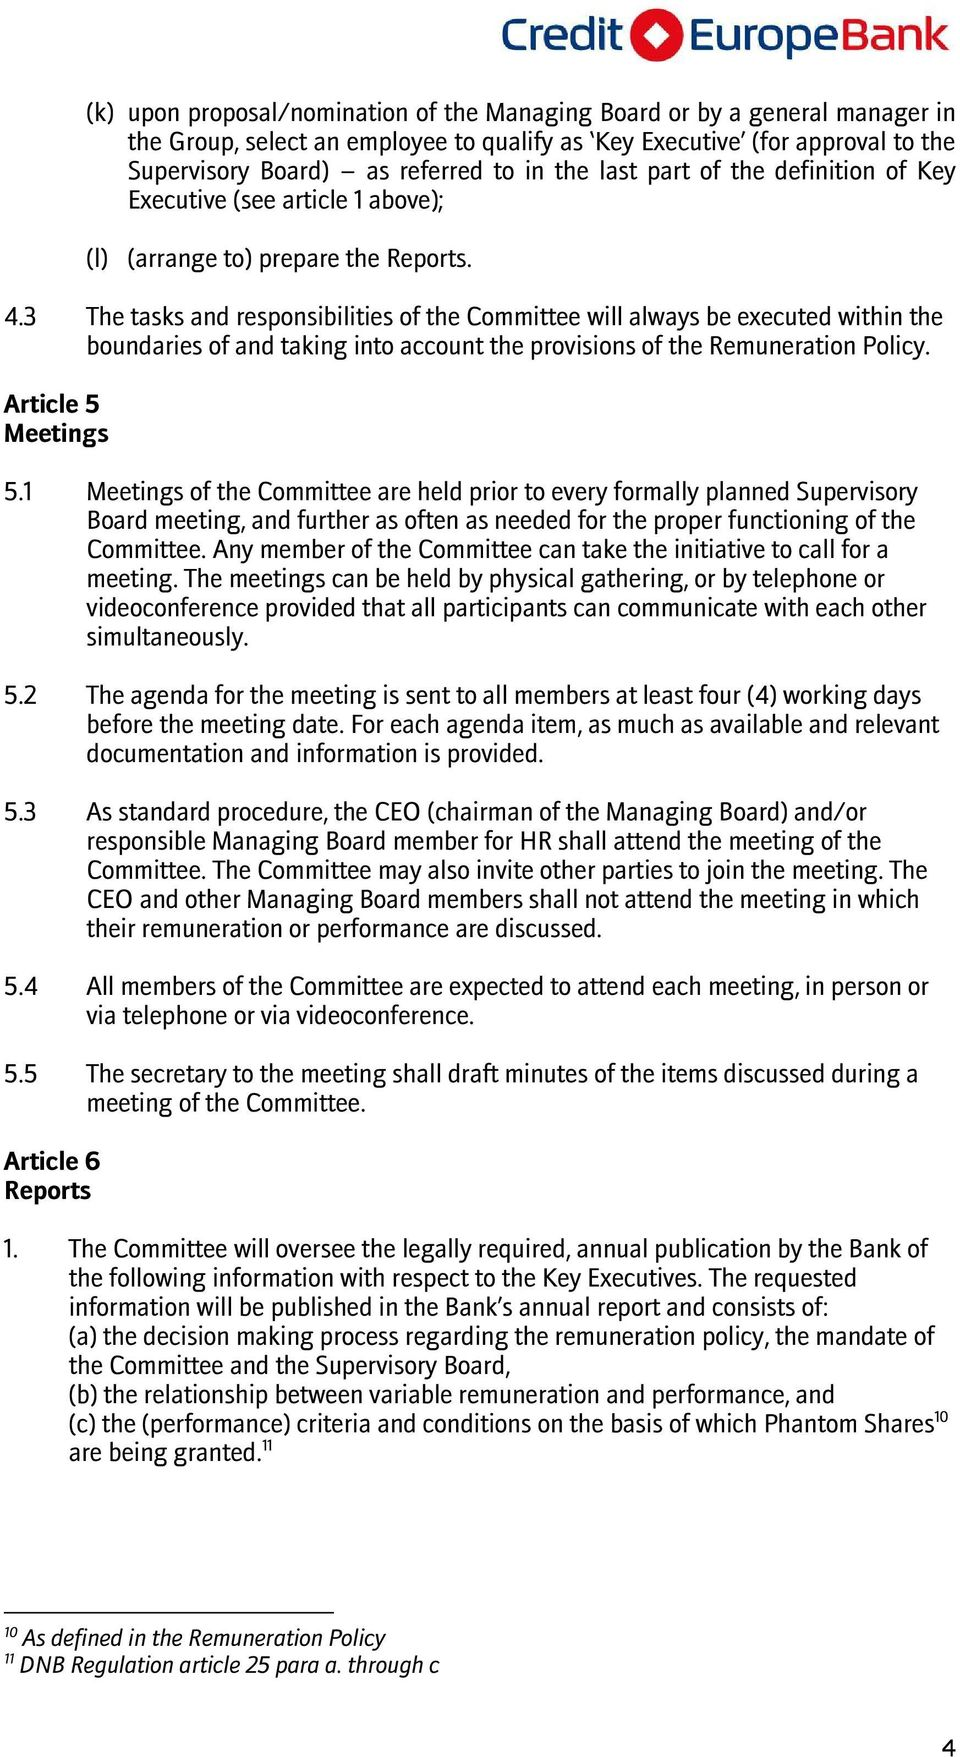 3 The tasks and responsibilities of the Committee will always be executed within the boundaries of and taking into account the provisions of the Remuneration Policy. Article 5 Meetings 5.